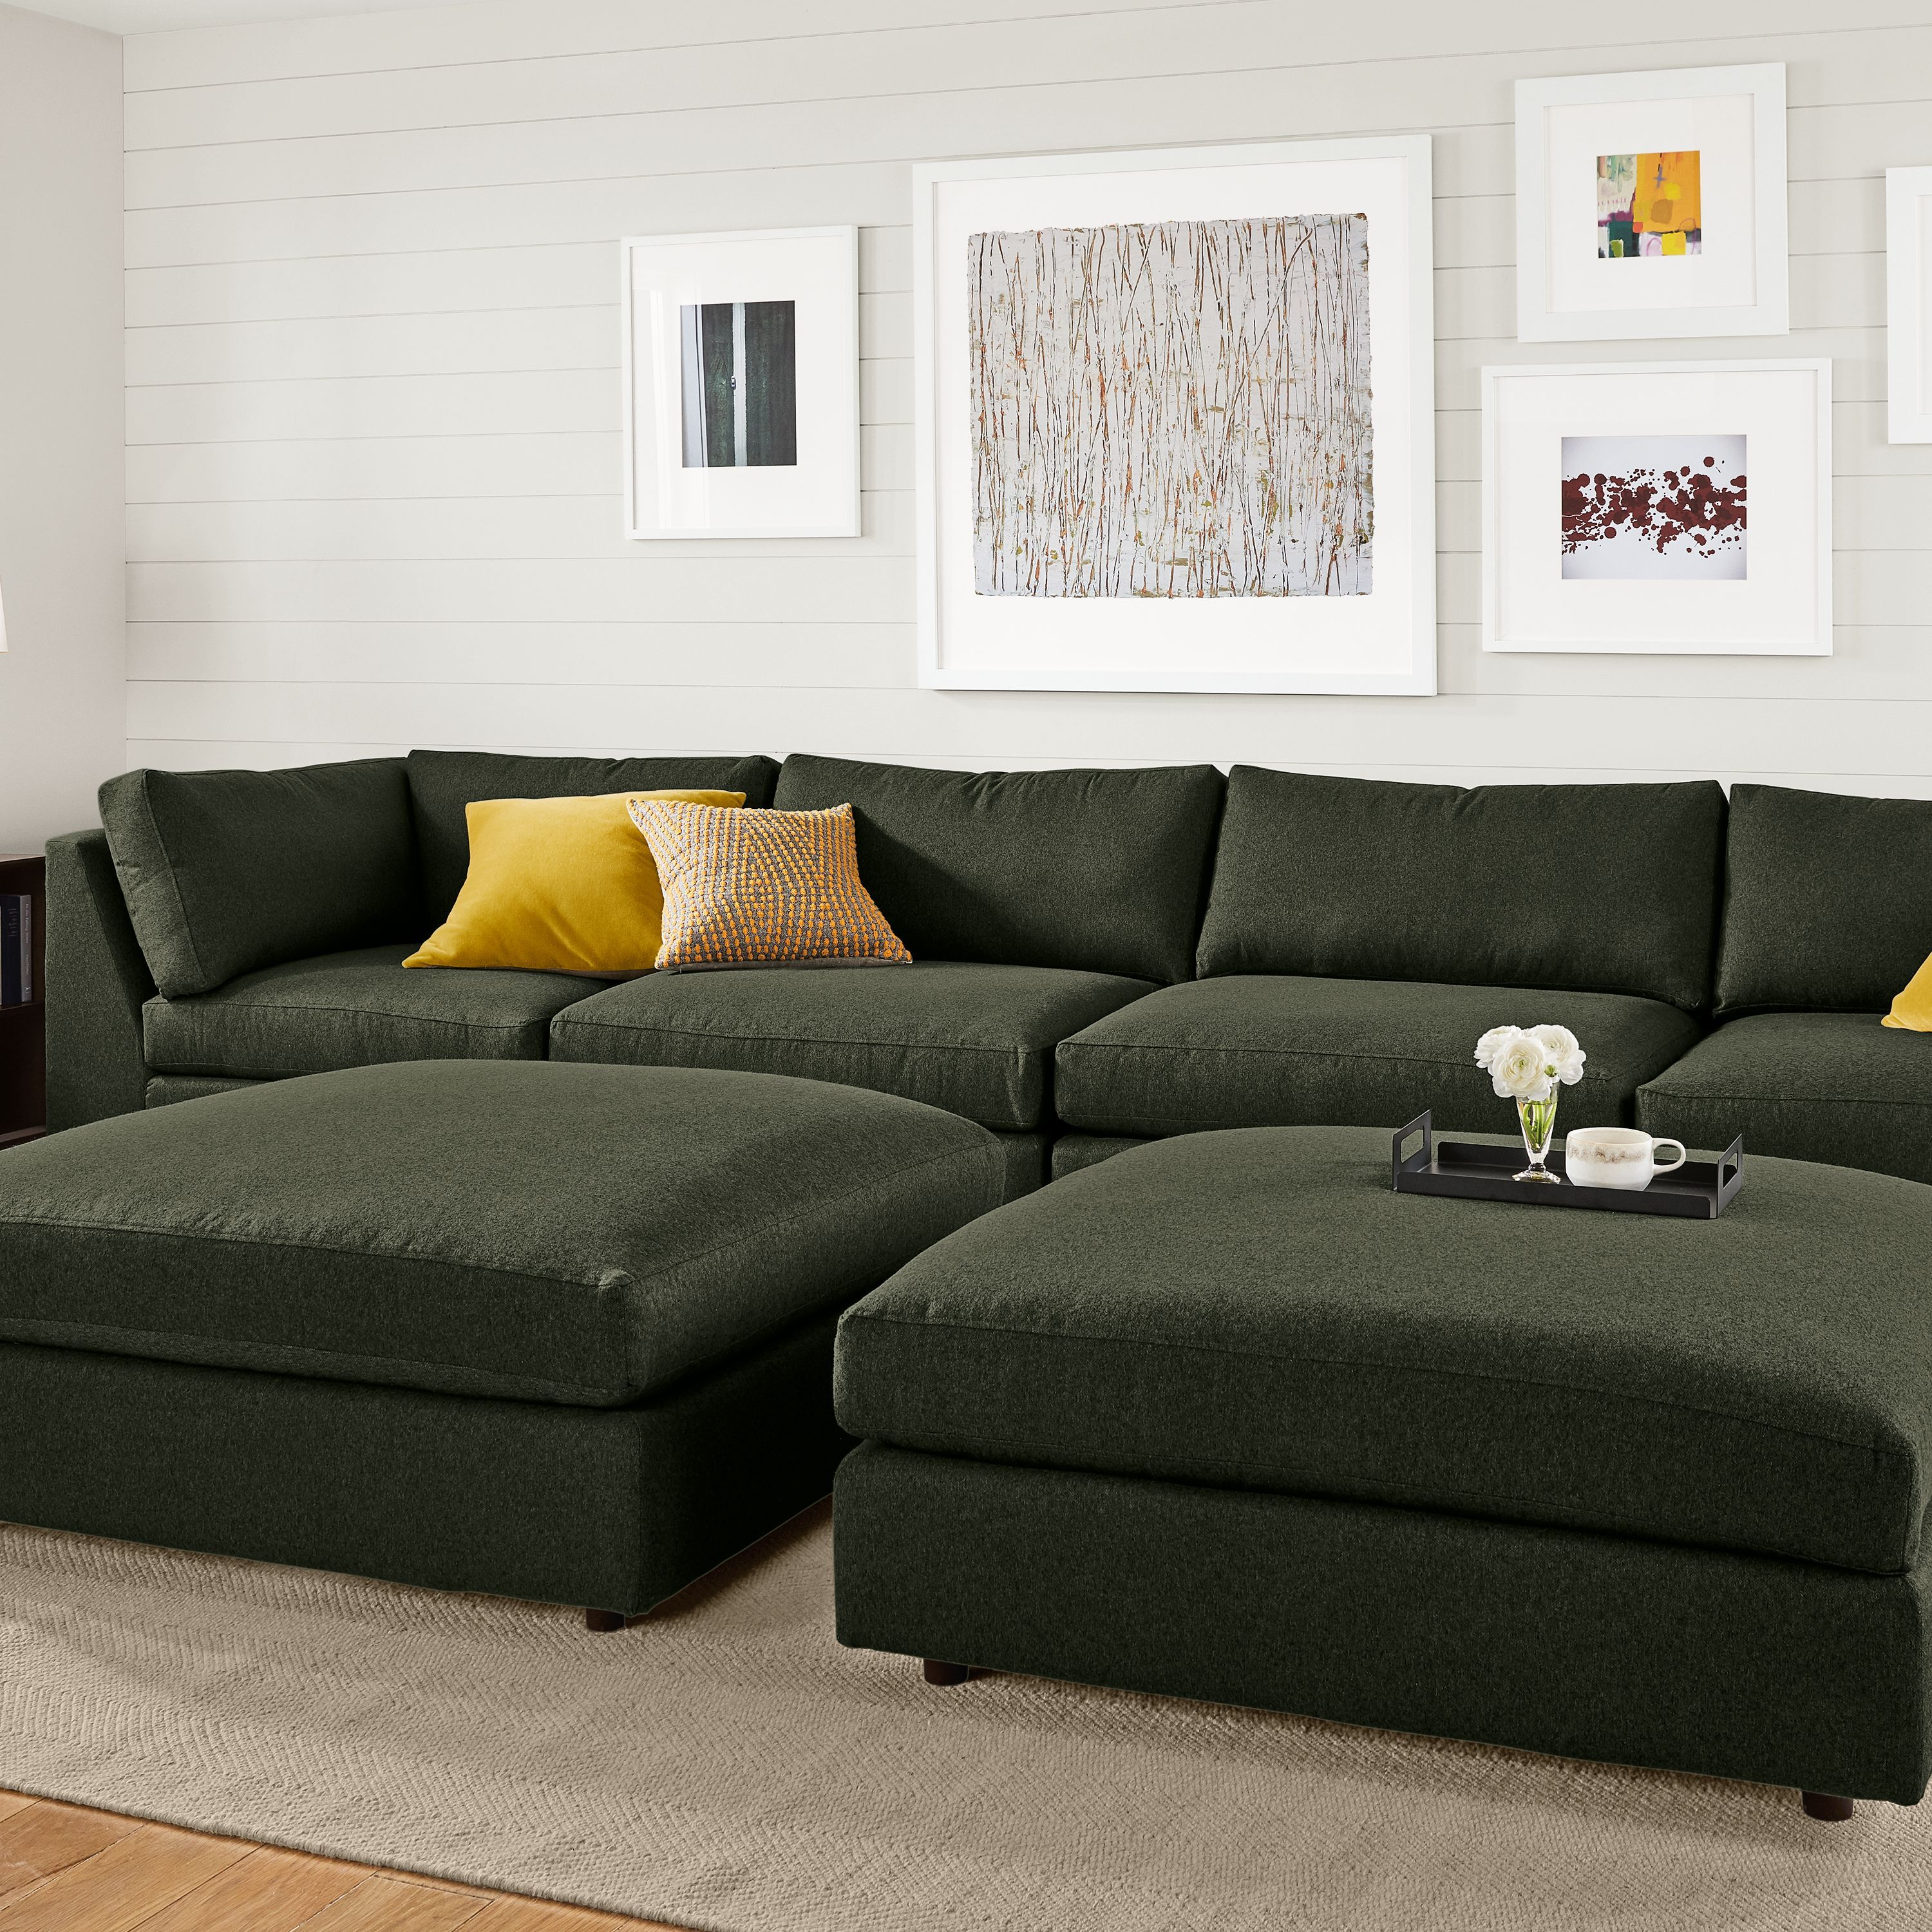 Outstanding Room Board Linger Sectionals In 2019 Sectional Sofa Pabps2019 Chair Design Images Pabps2019Com